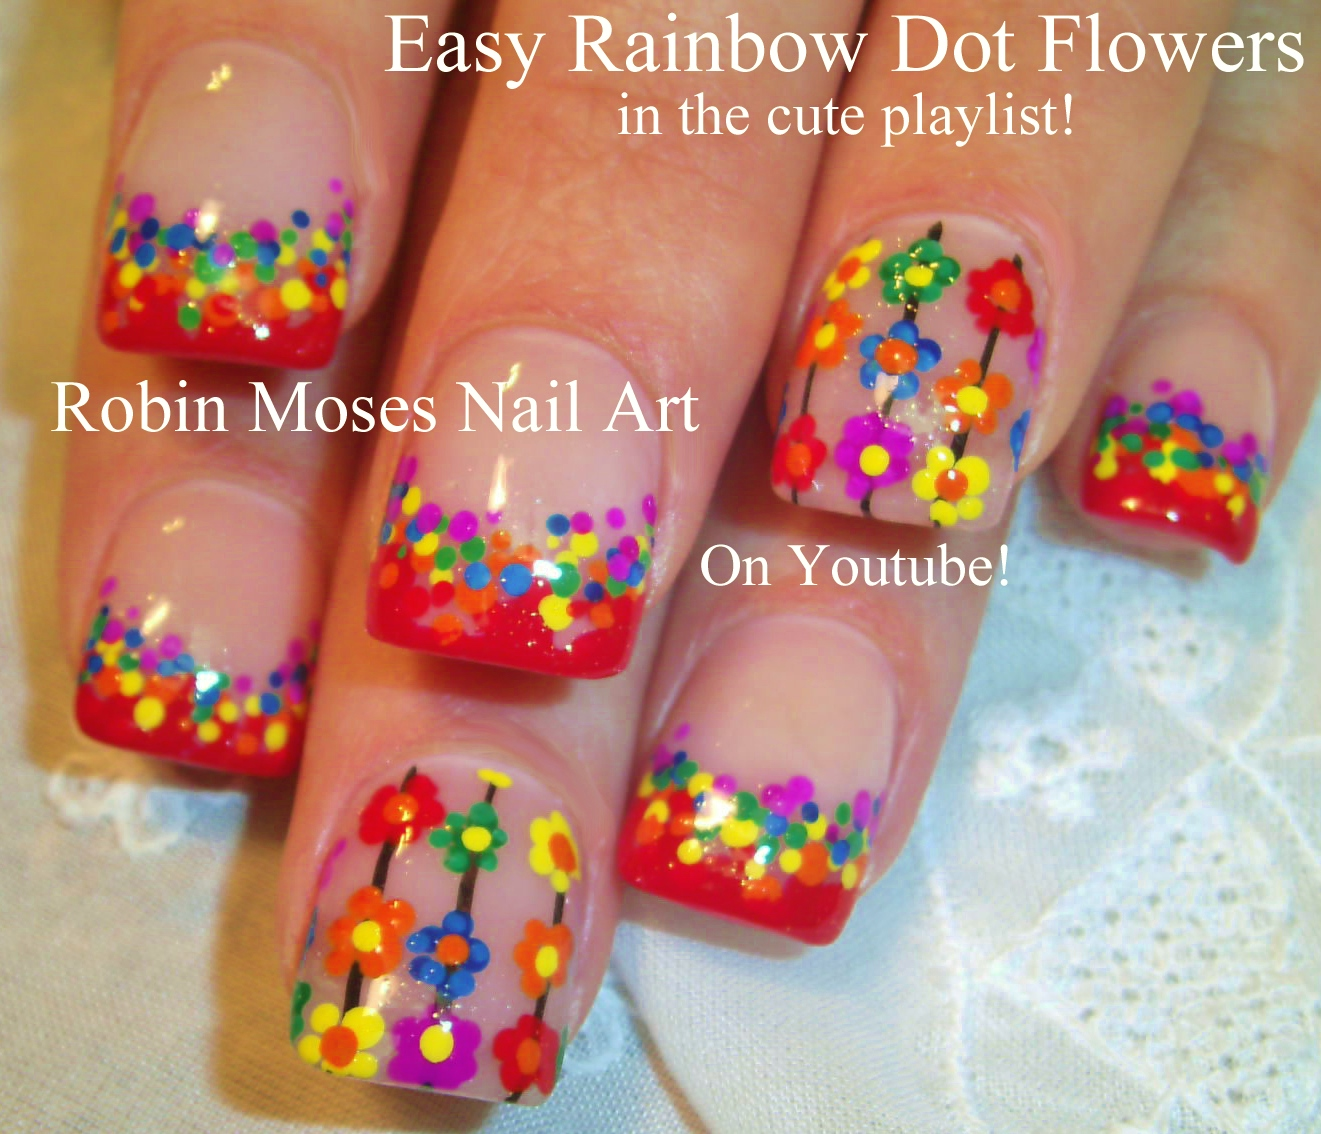 Robin Moses Nail Art: Rainbow Animal Paw Prints! Super